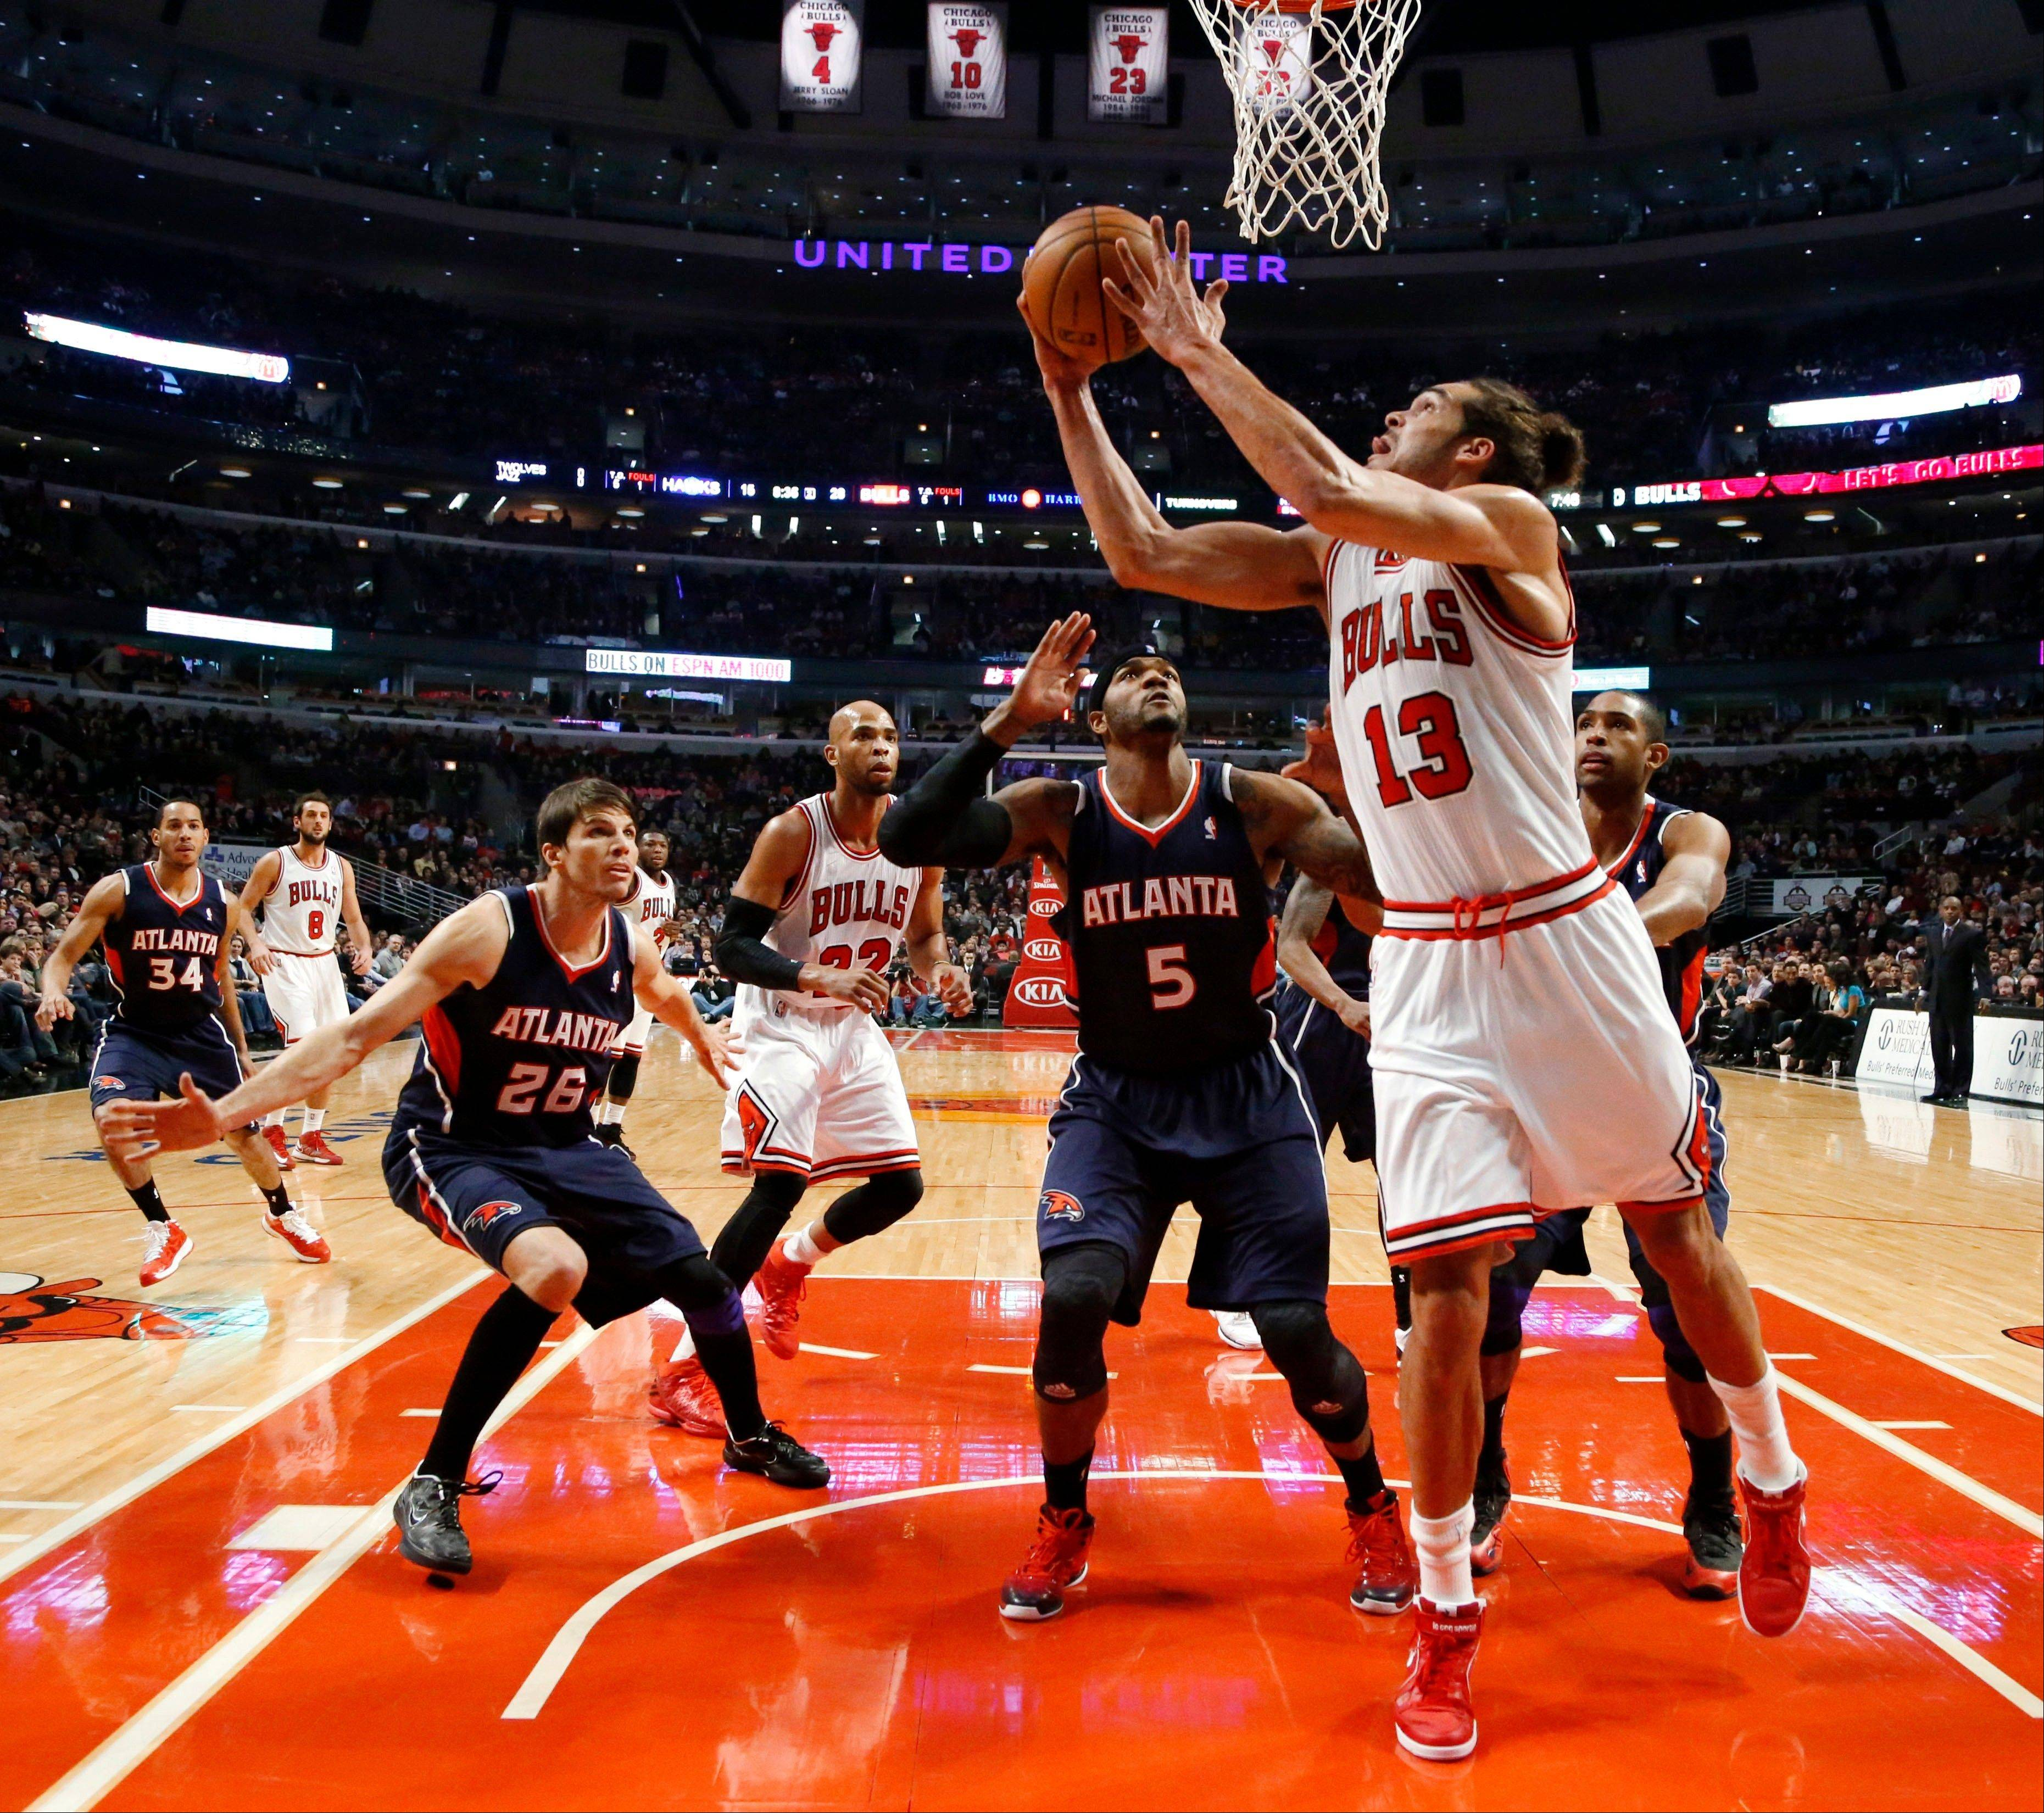 Bulls center Joakim Noah (13) shoots a reverse layup past Atlanta Hawks' Kyle Korver (26) and Josh Smith (5) during the first half of an NBA basketball game Monday, Jan. 14, 2013, in Chicago.